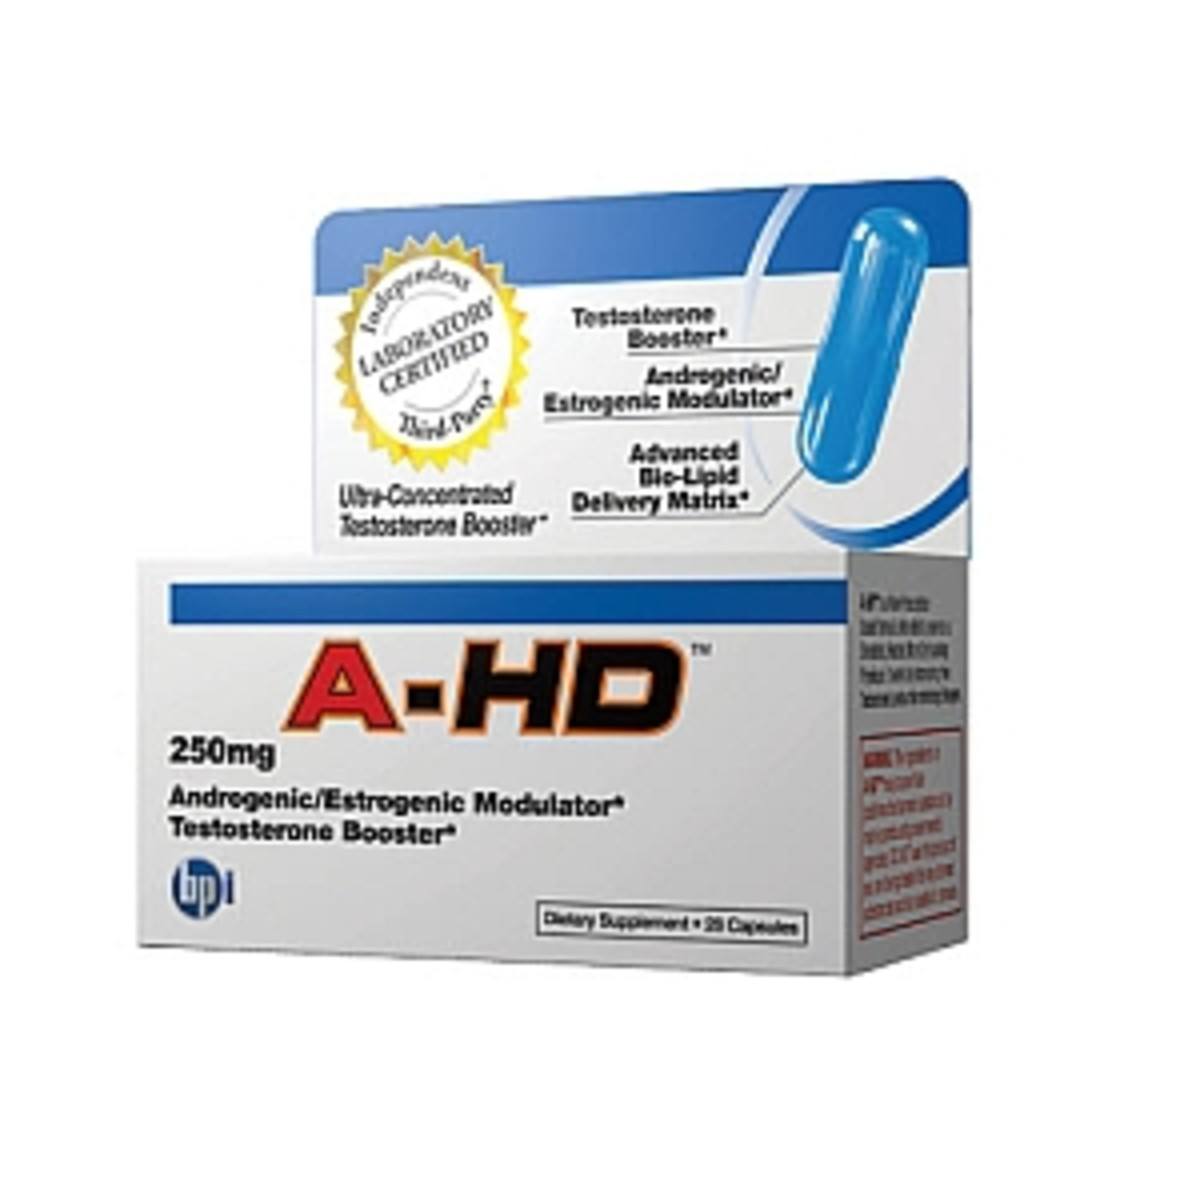 bpi-sports-a-hd-arimedex-ingredients-side-effects-and-reviews